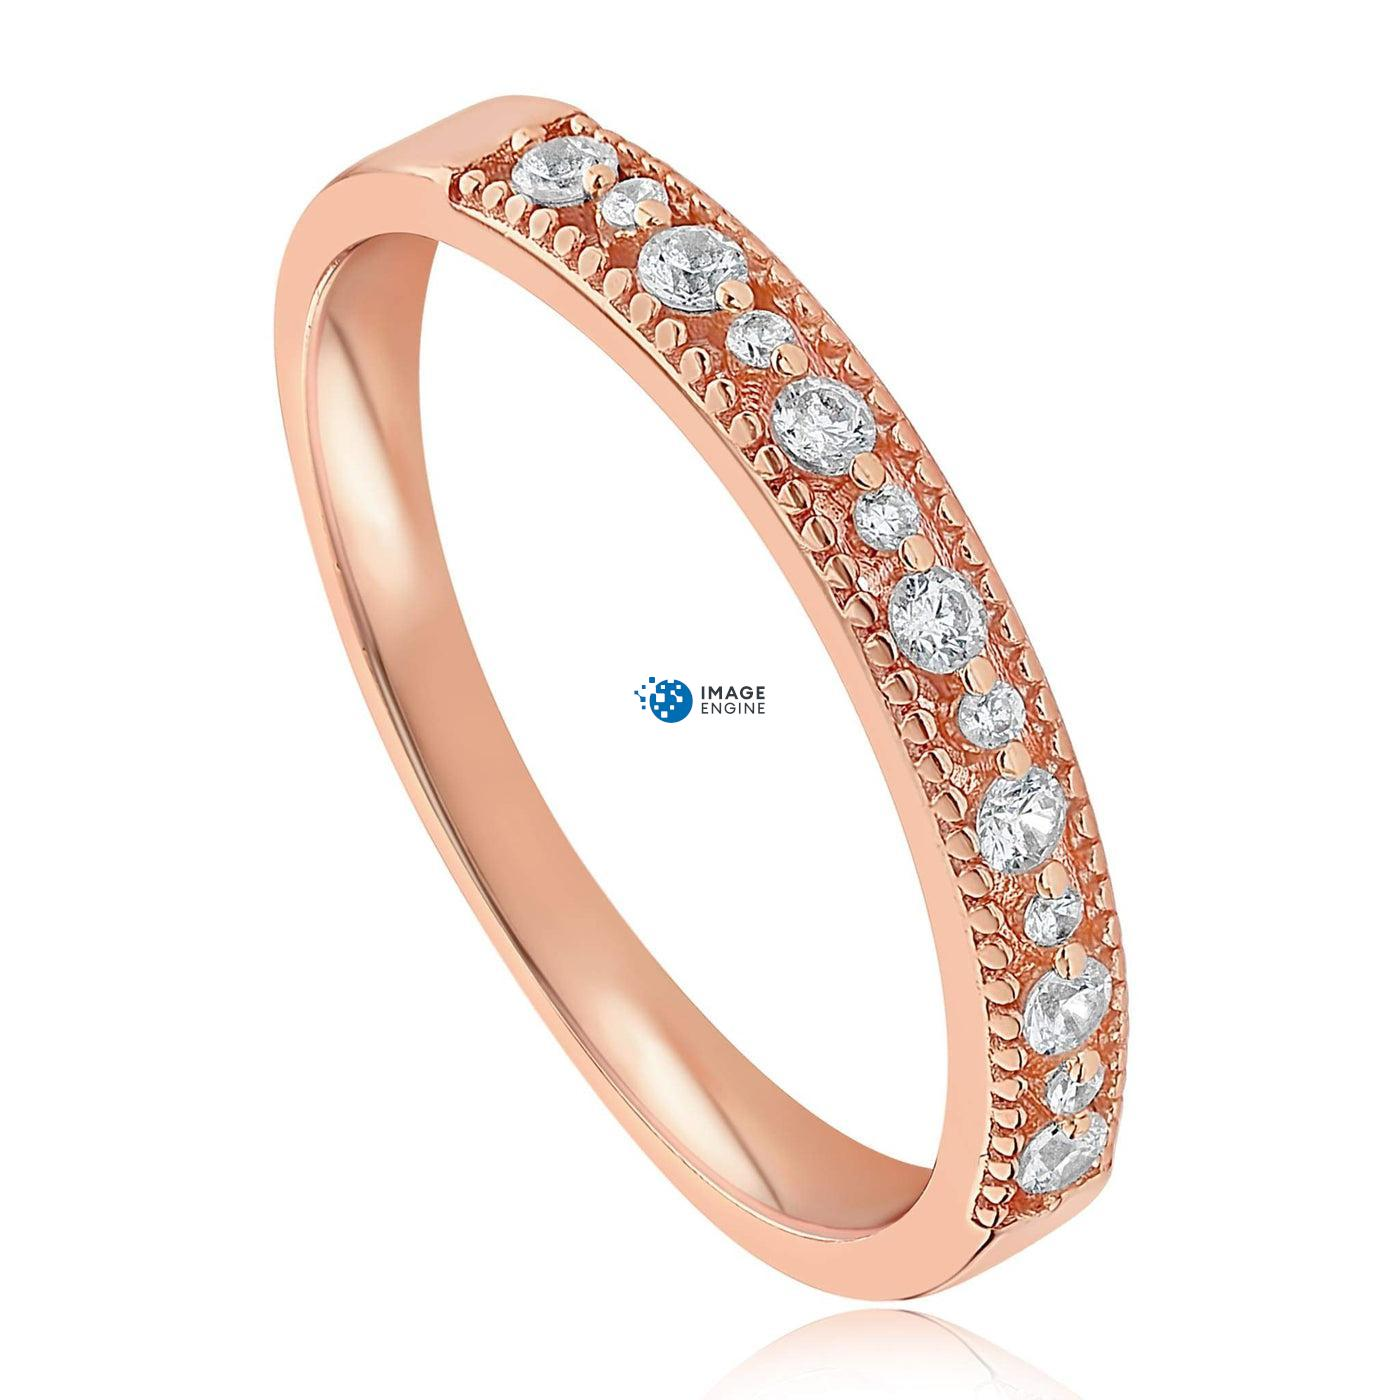 Joyce Layered Stack Ring - Three Quarter View - 18K Rose Gold Vermeil